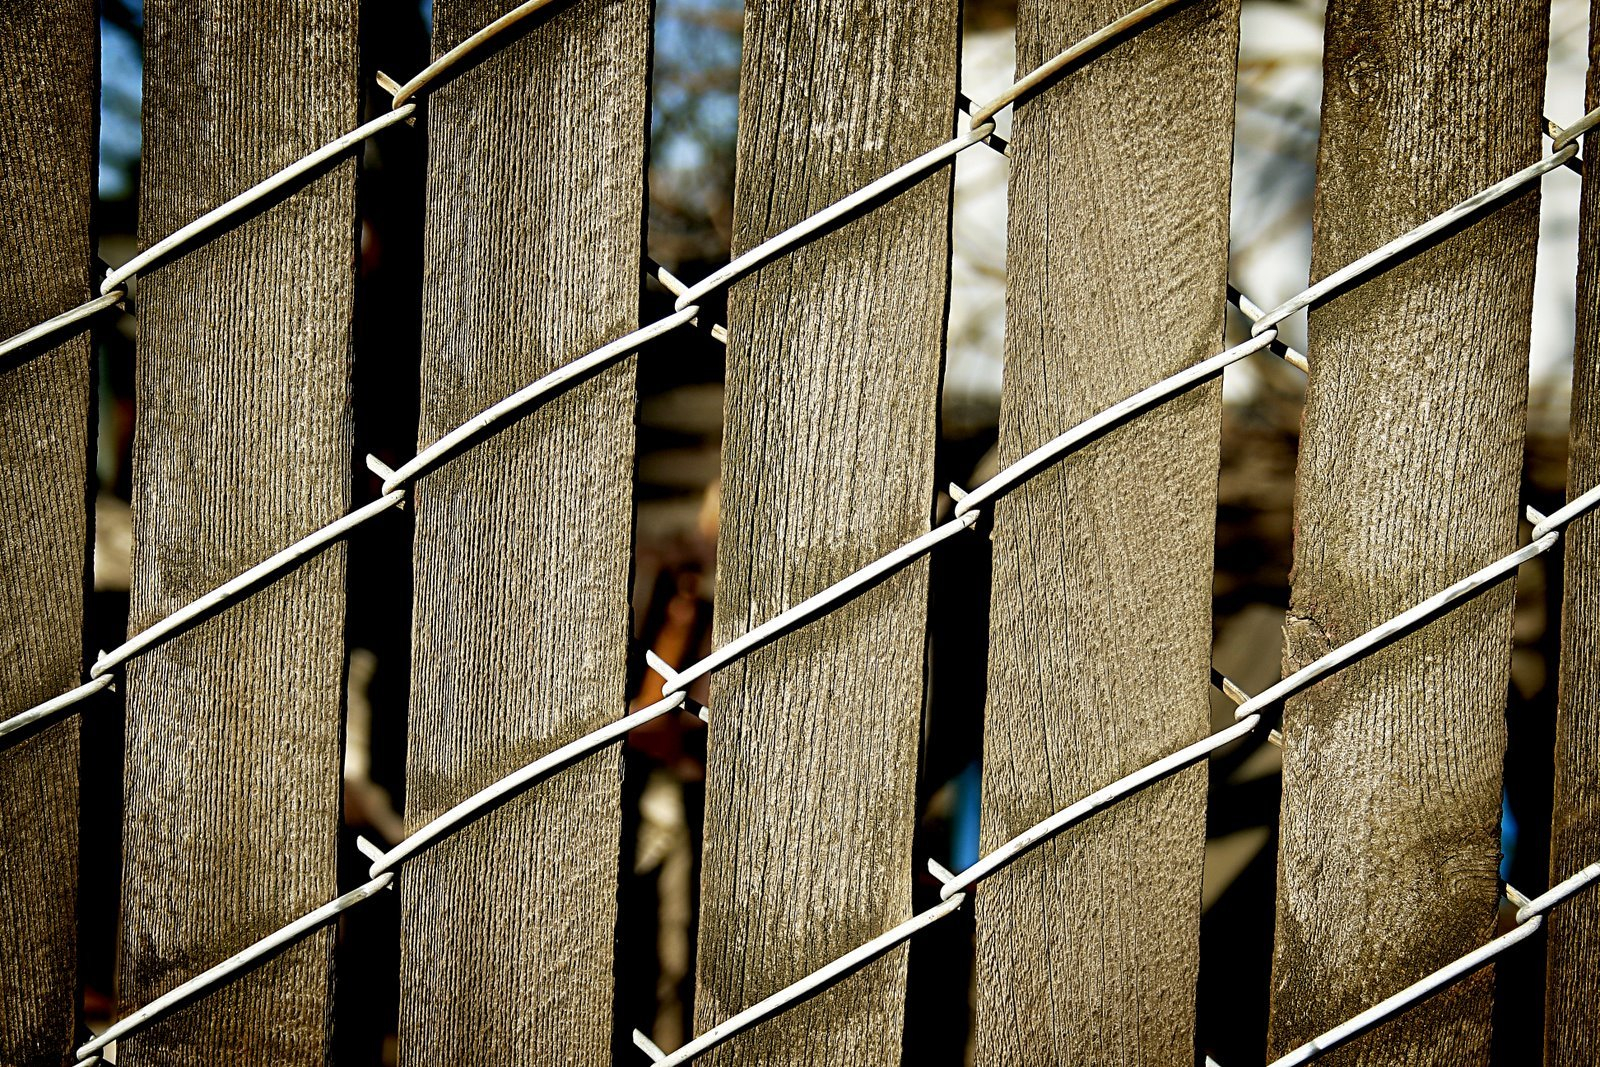 Chain Link Fence Wood Slats Famous Slats For Chain Link Fence Wood with proportions 1600 X 1067